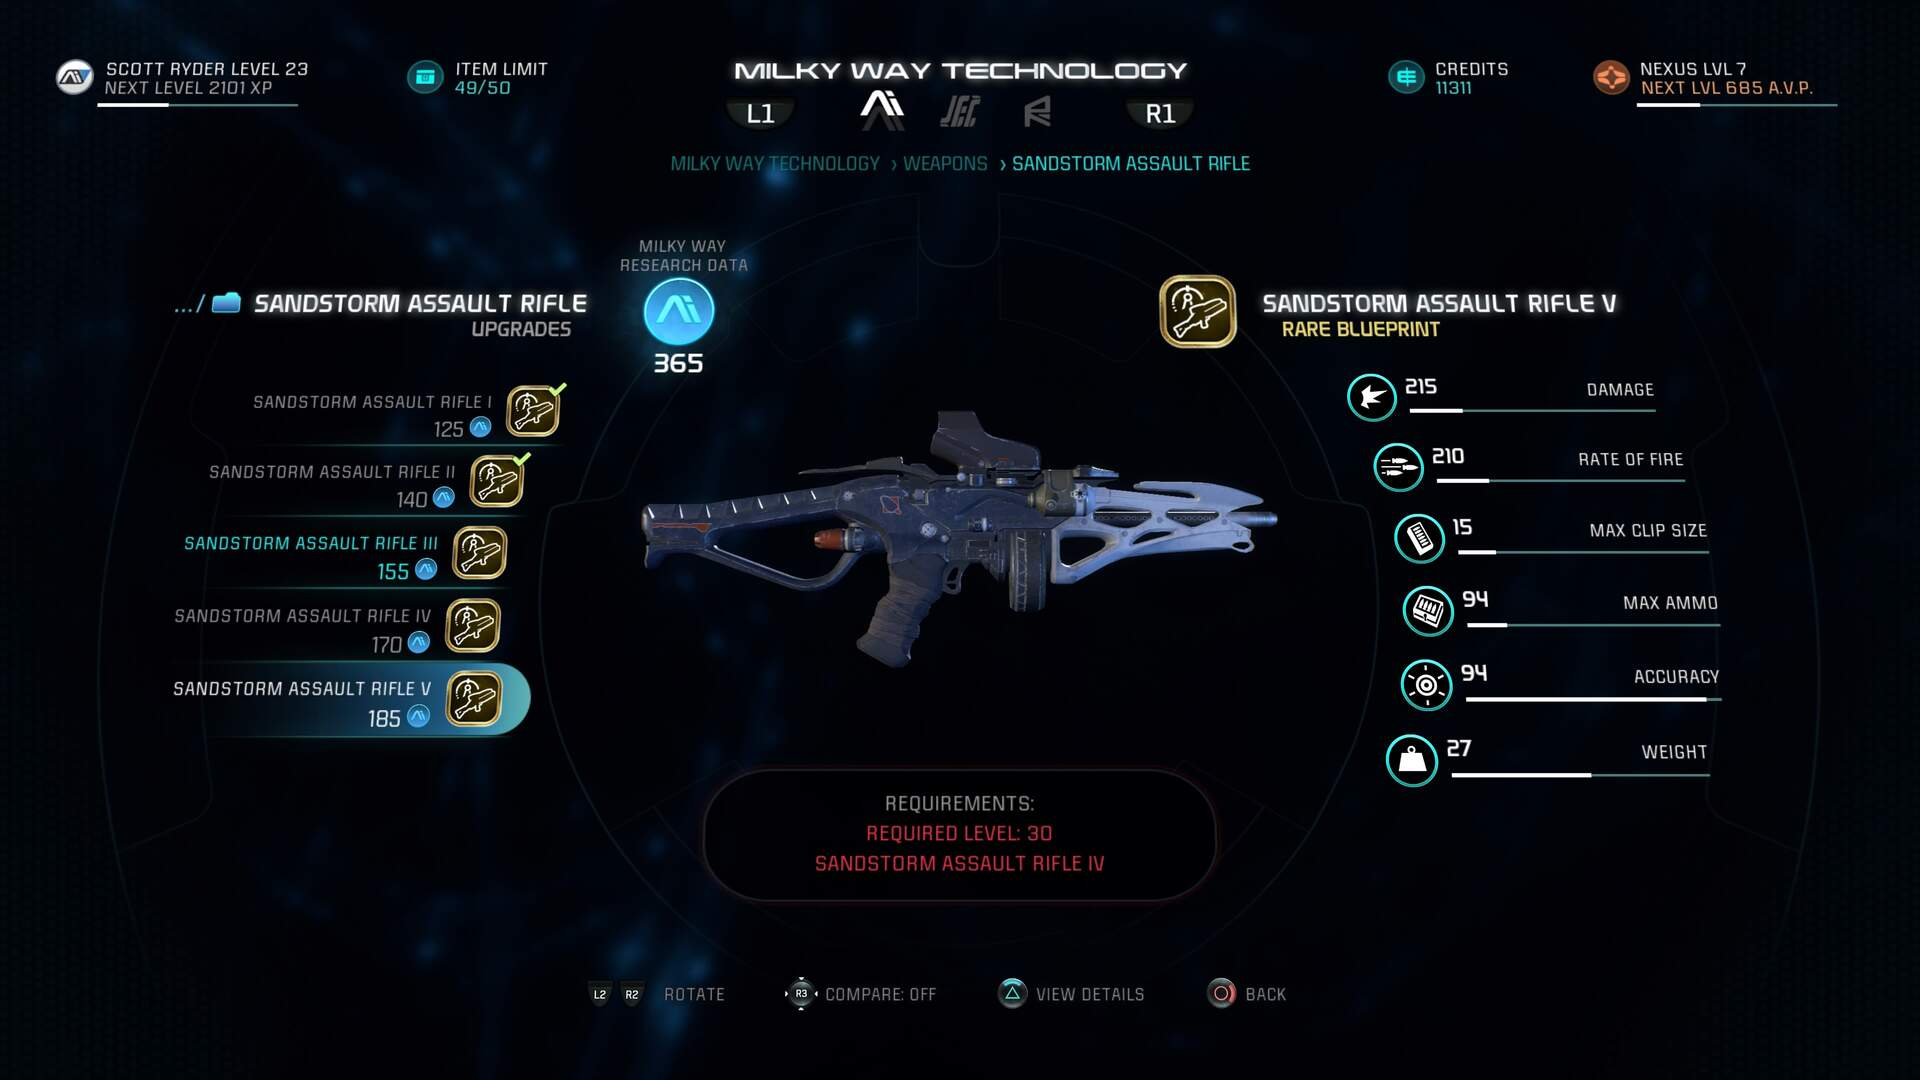 Mass Effect Andromeda Weapons - Maximum Weapon Slots, Mods, Augments, Best Loadouts